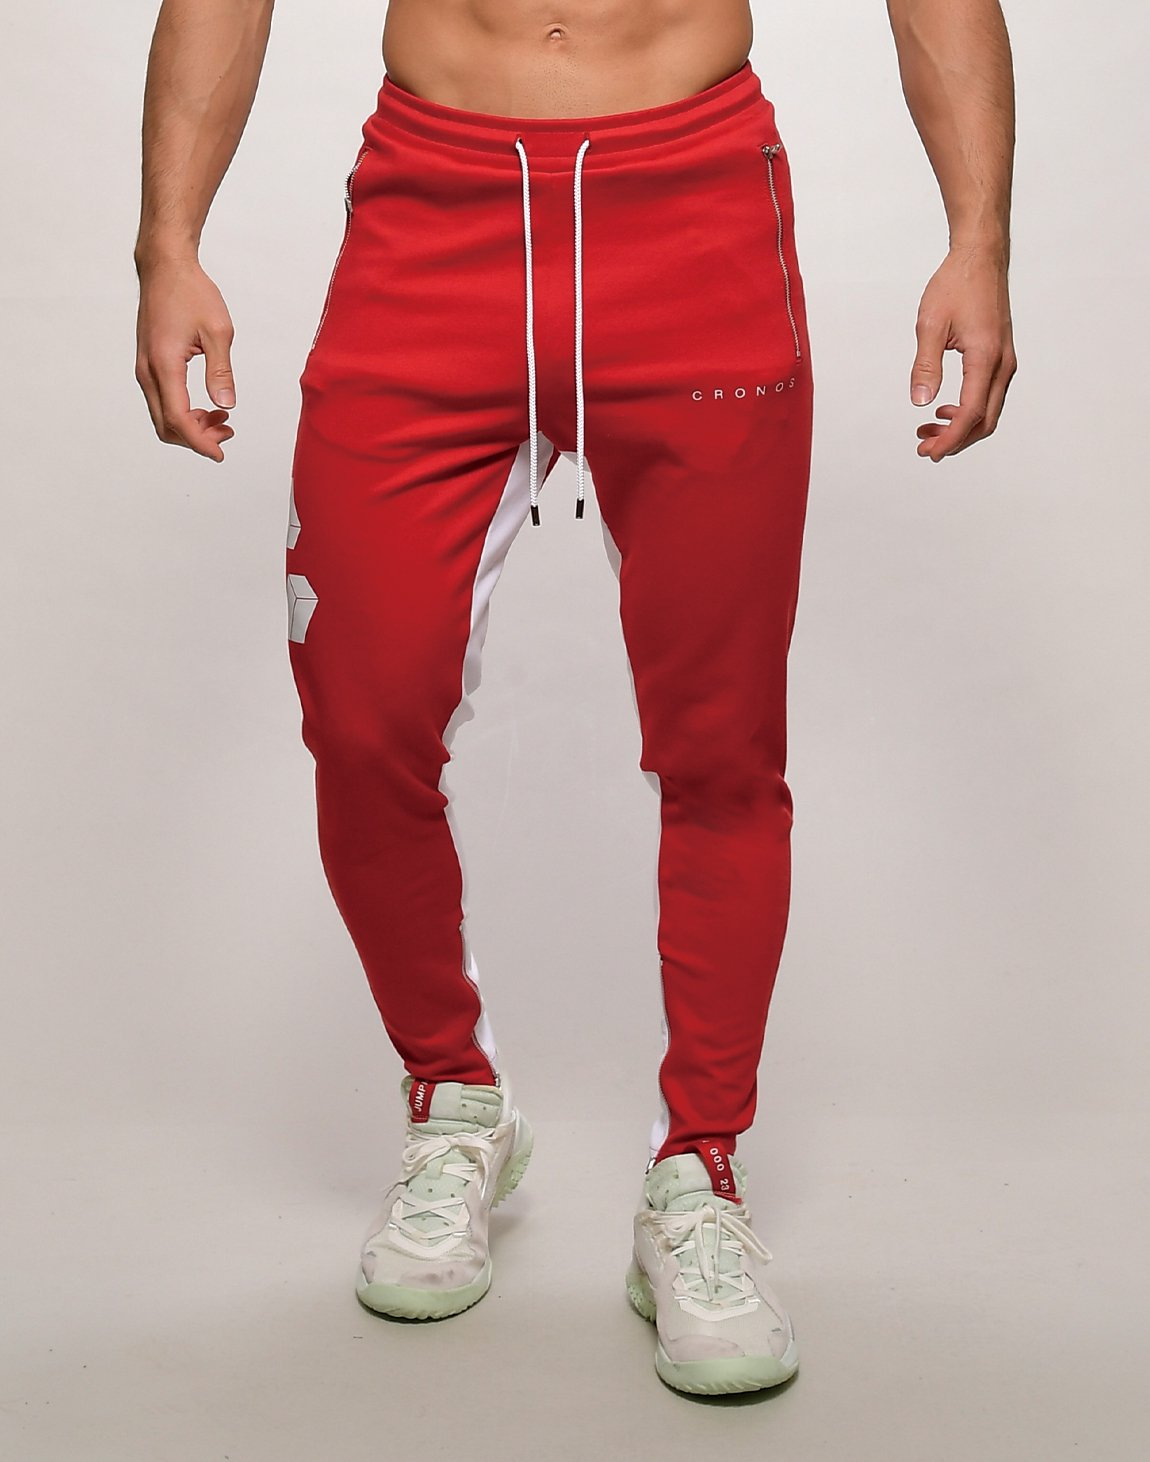 <img class='new_mark_img1' src='https://img.shop-pro.jp/img/new/icons55.gif' style='border:none;display:inline;margin:0px;padding:0px;width:auto;' />CRONOS BIG LOGO SWEET PANTS【RED】